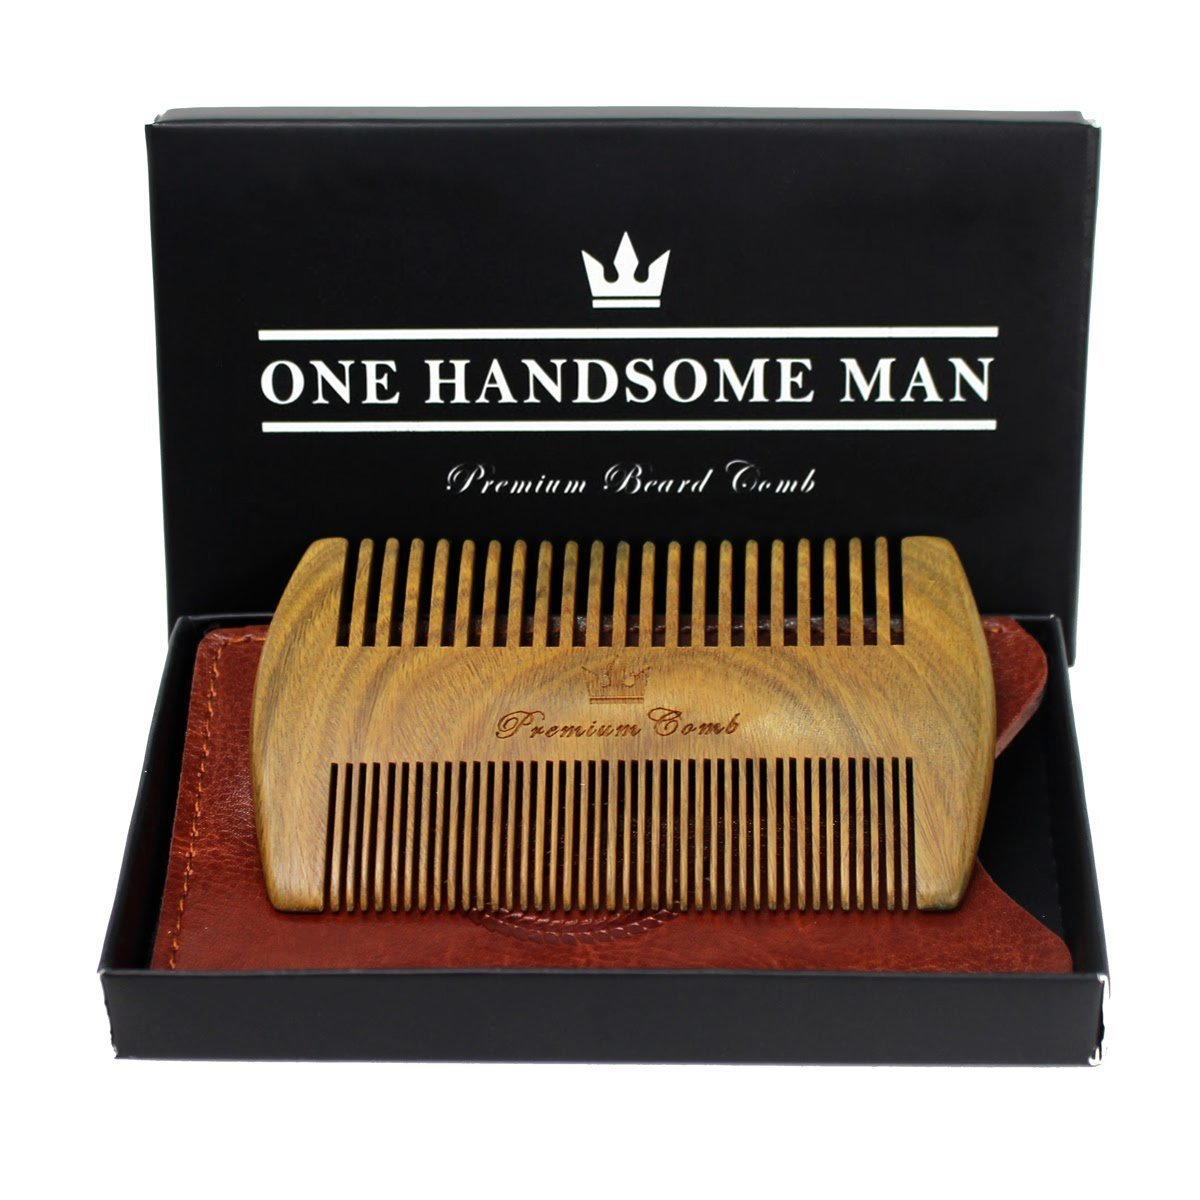 Beard Comb Kit by One Handsome Man - Unique Gifts For Men - Perfect as Birthday Gifts For Men or Anniversary Gifts For Men - With Leather Travel Case and Gift Box VP-C7SP-WRTG